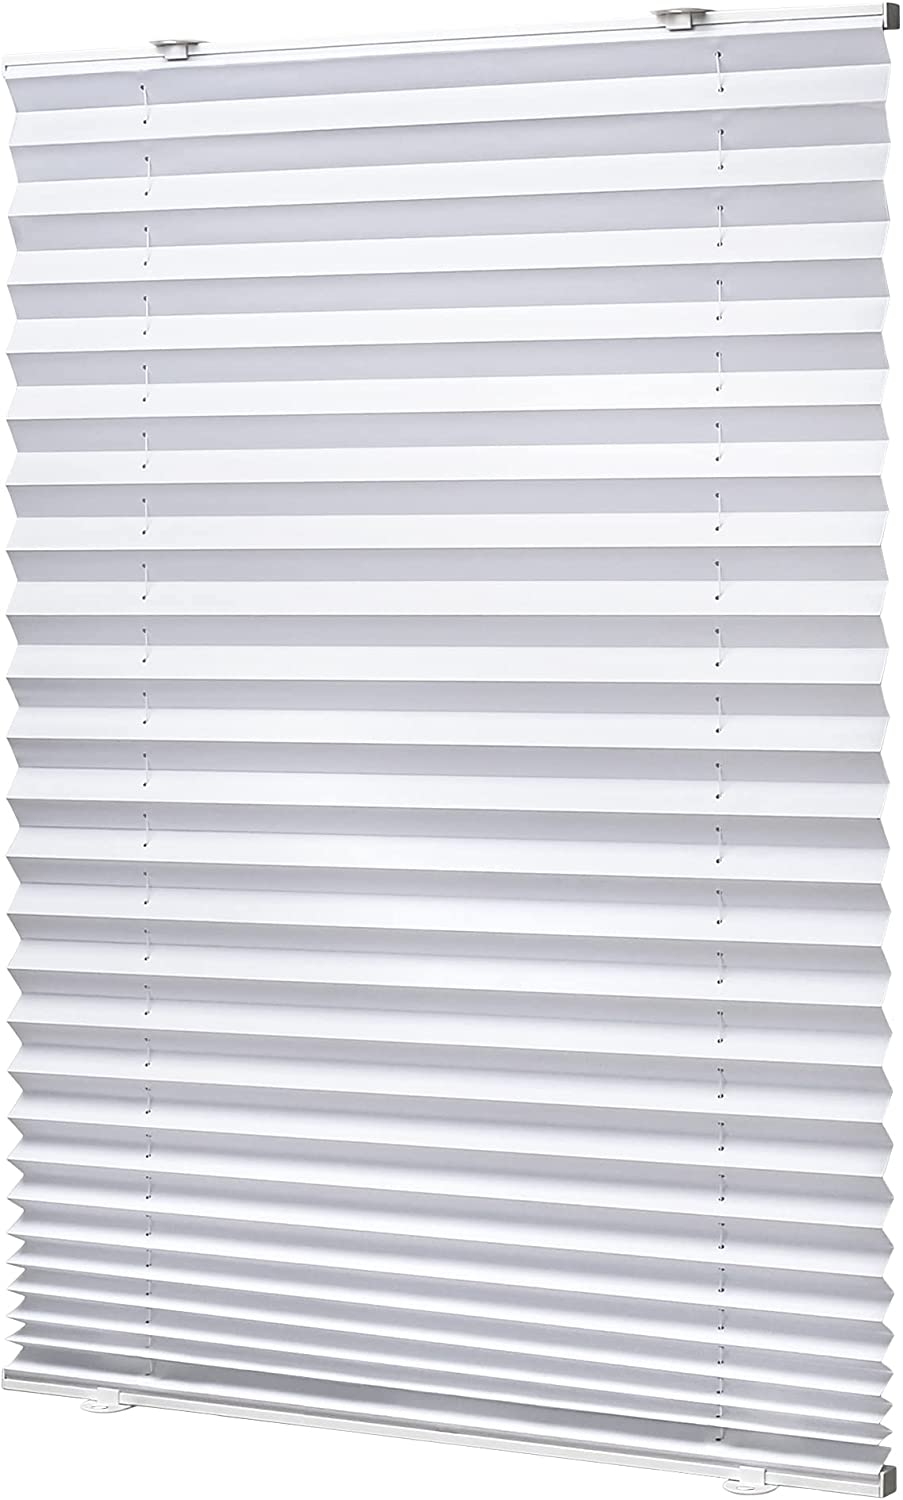 Dedication LazBlinds Tool-Free Cordless Pleated Shades Suction Wh Inventory cleanup selling sale Cups with